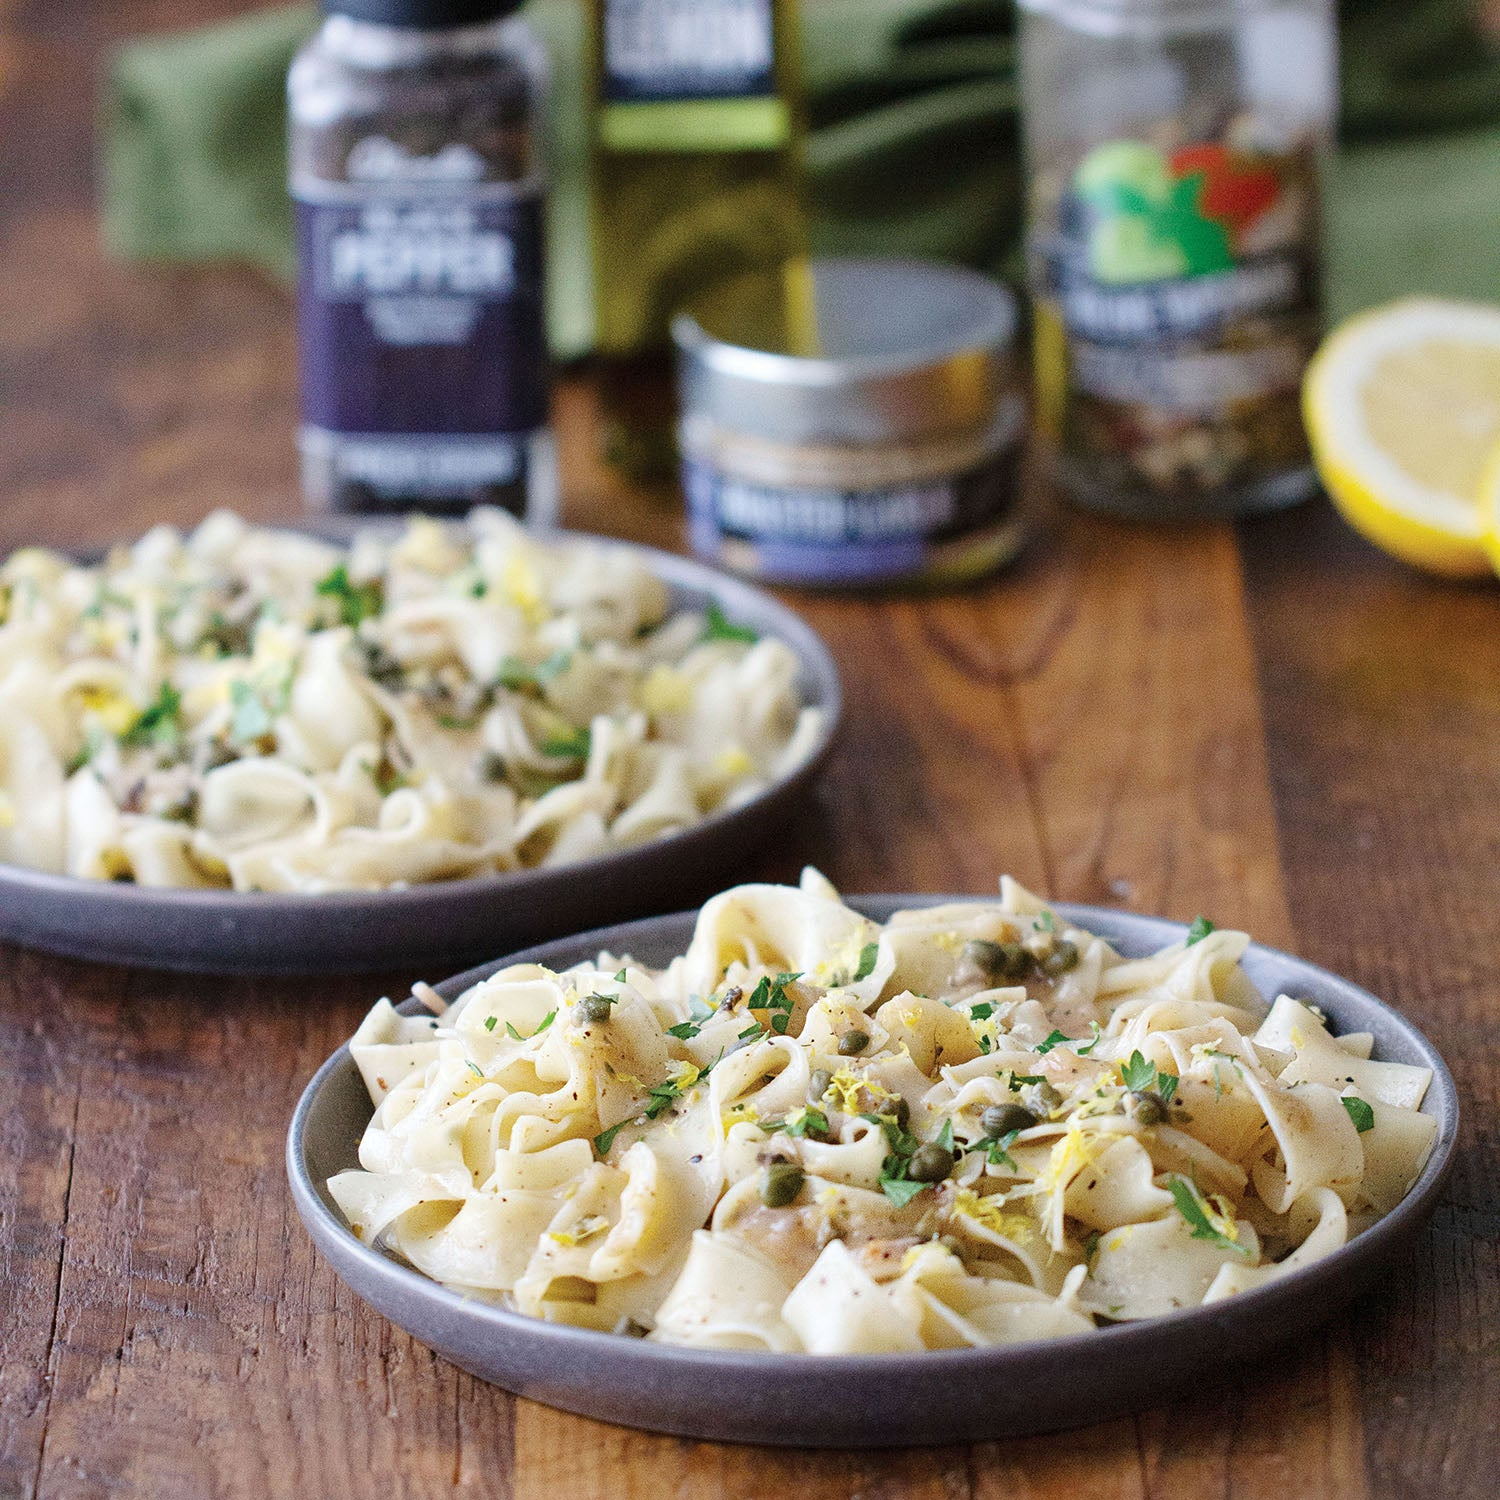 Lemon & Pepper Pasta with a Lemony White Wine Sauce